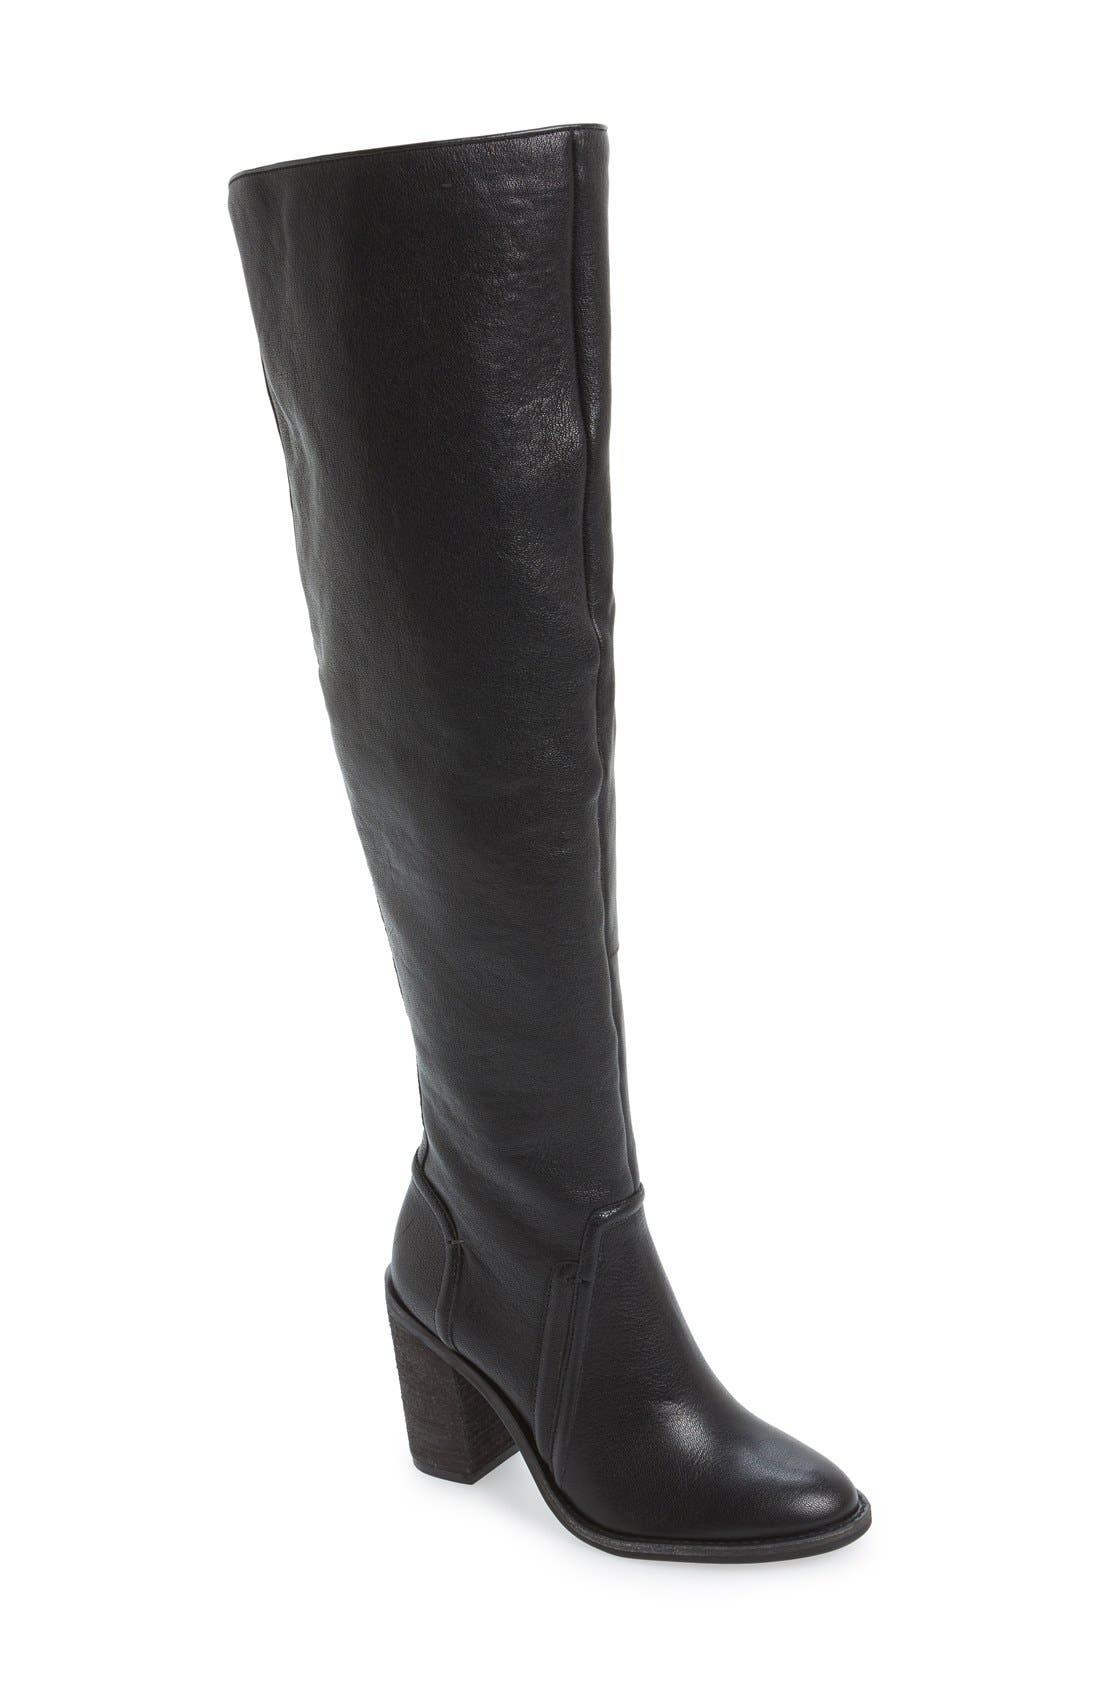 VINCE CAMUTO, 'Melaya' Over the Knee Boot, Main thumbnail 1, color, 001